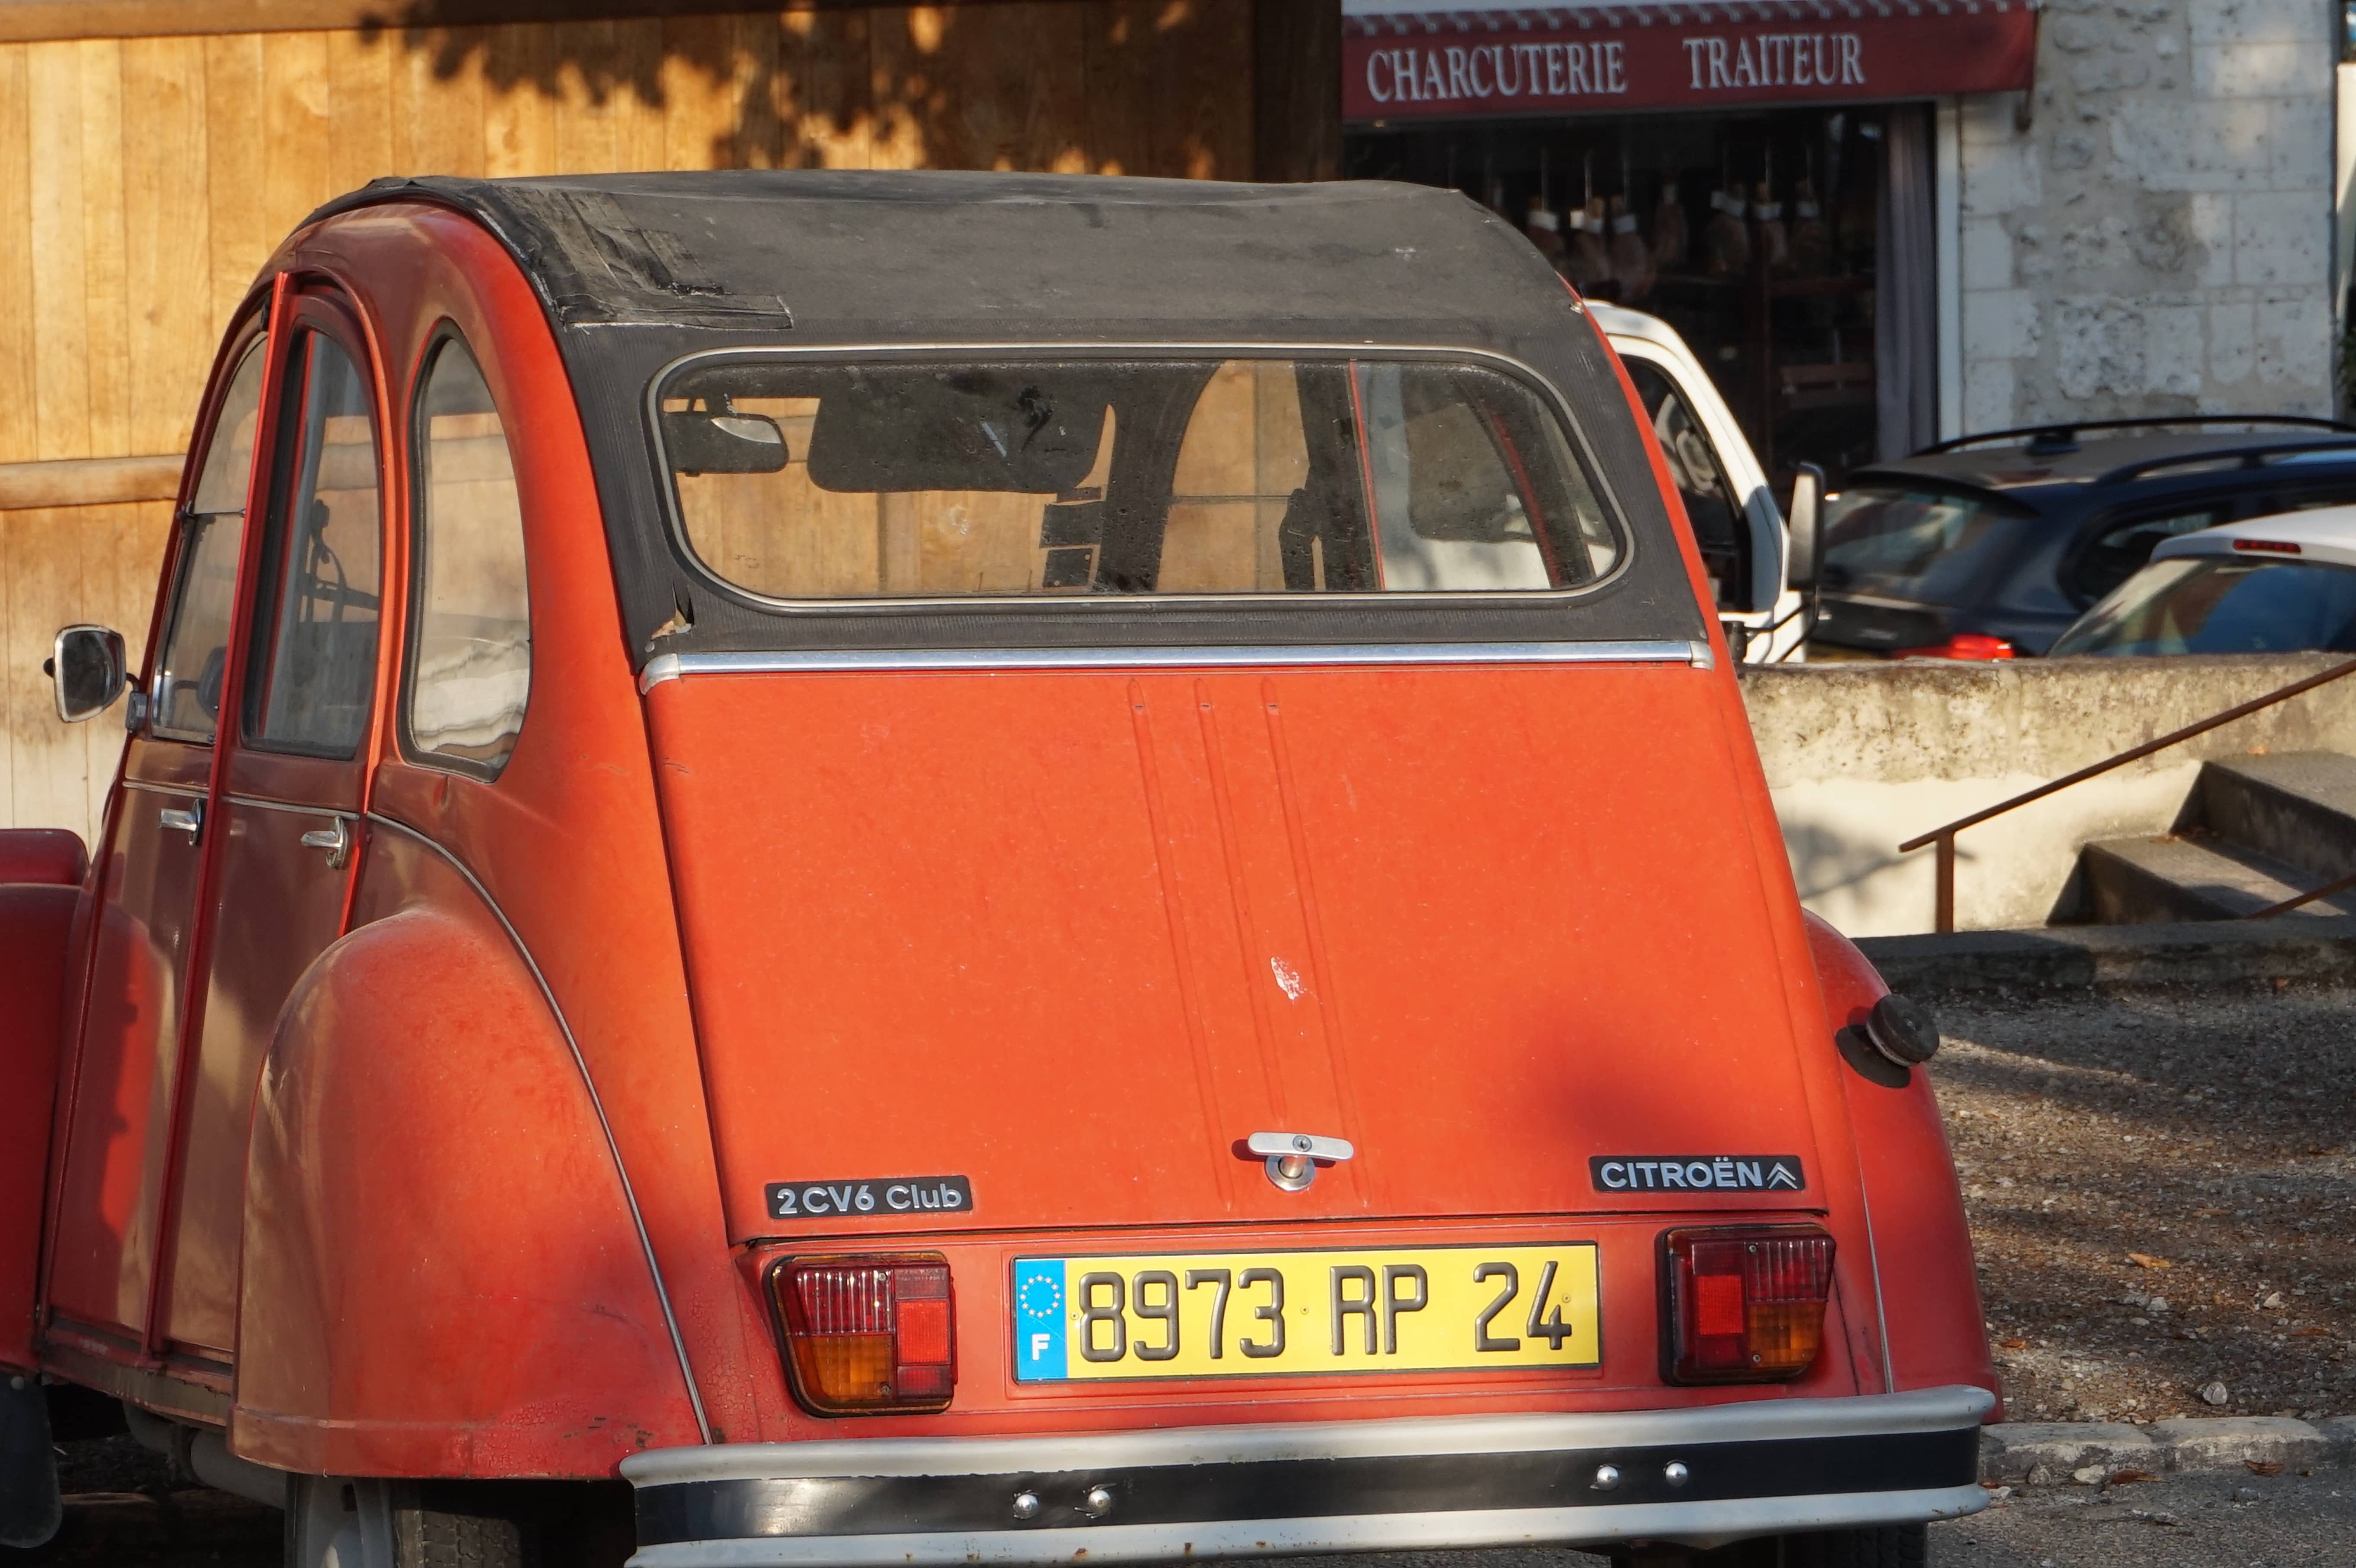 You can't have an article about roads in France without a pictures of a 2CV